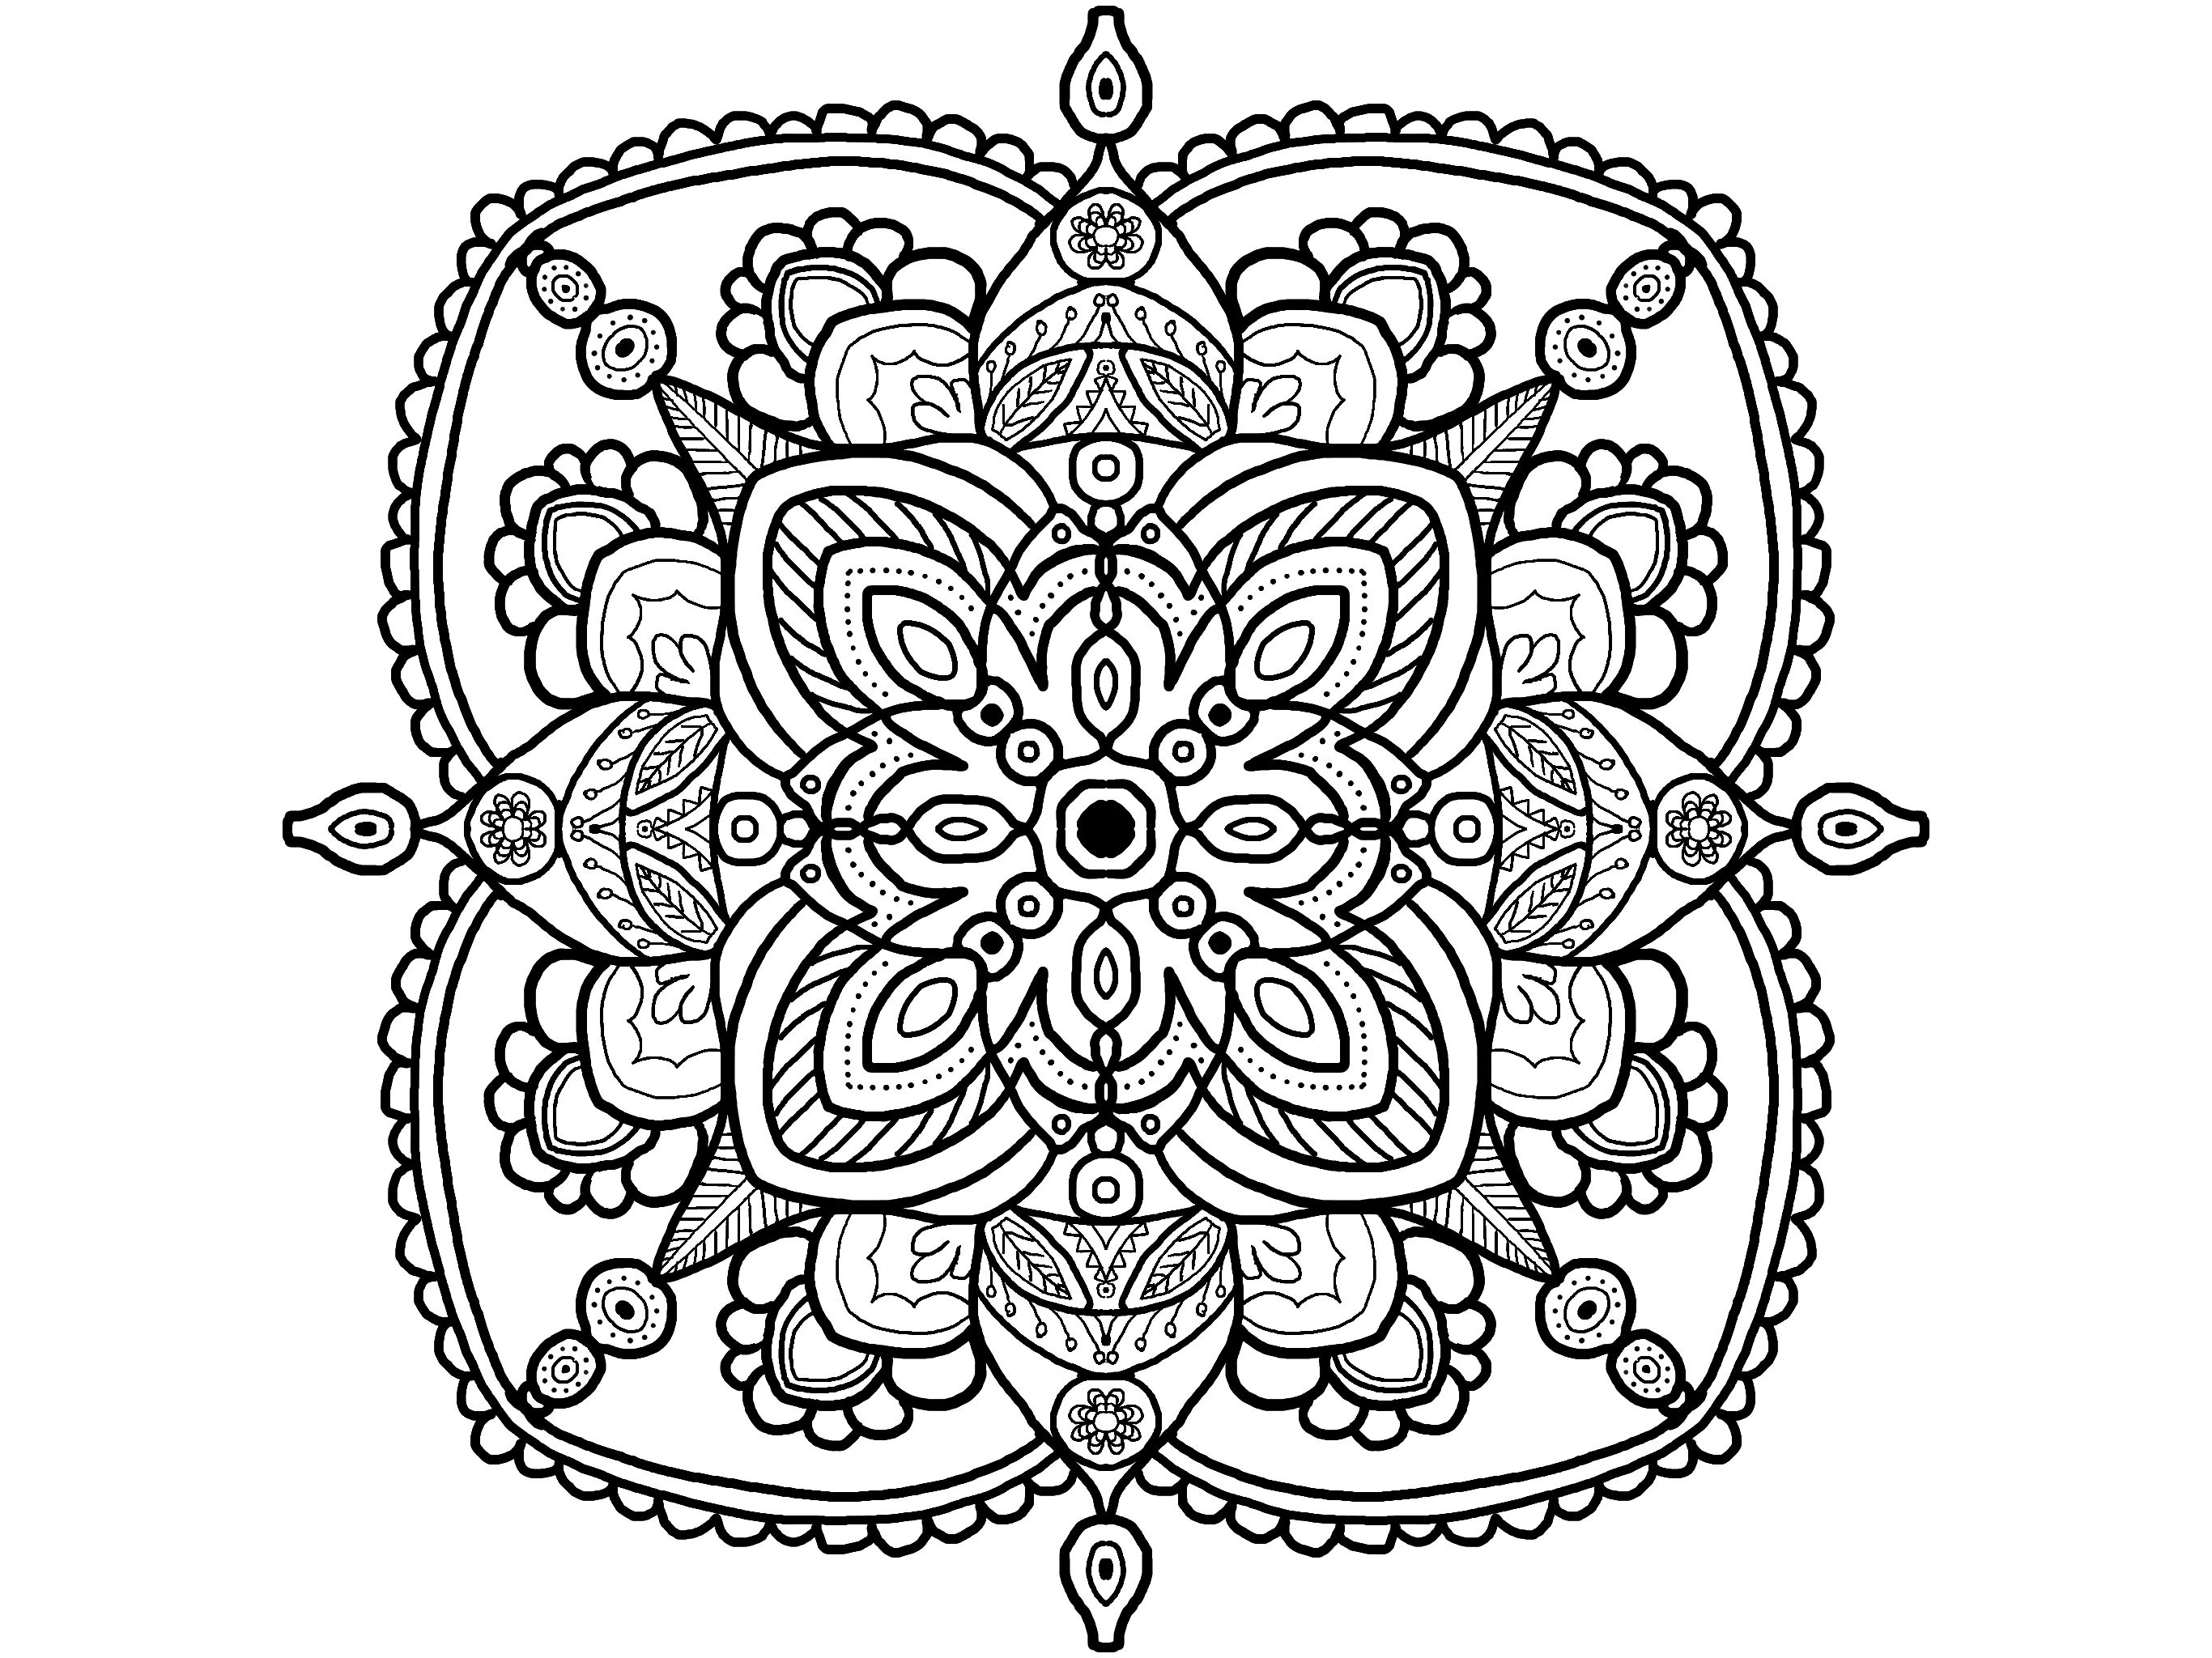 Mandala Coloring Page Adult Easy Fun